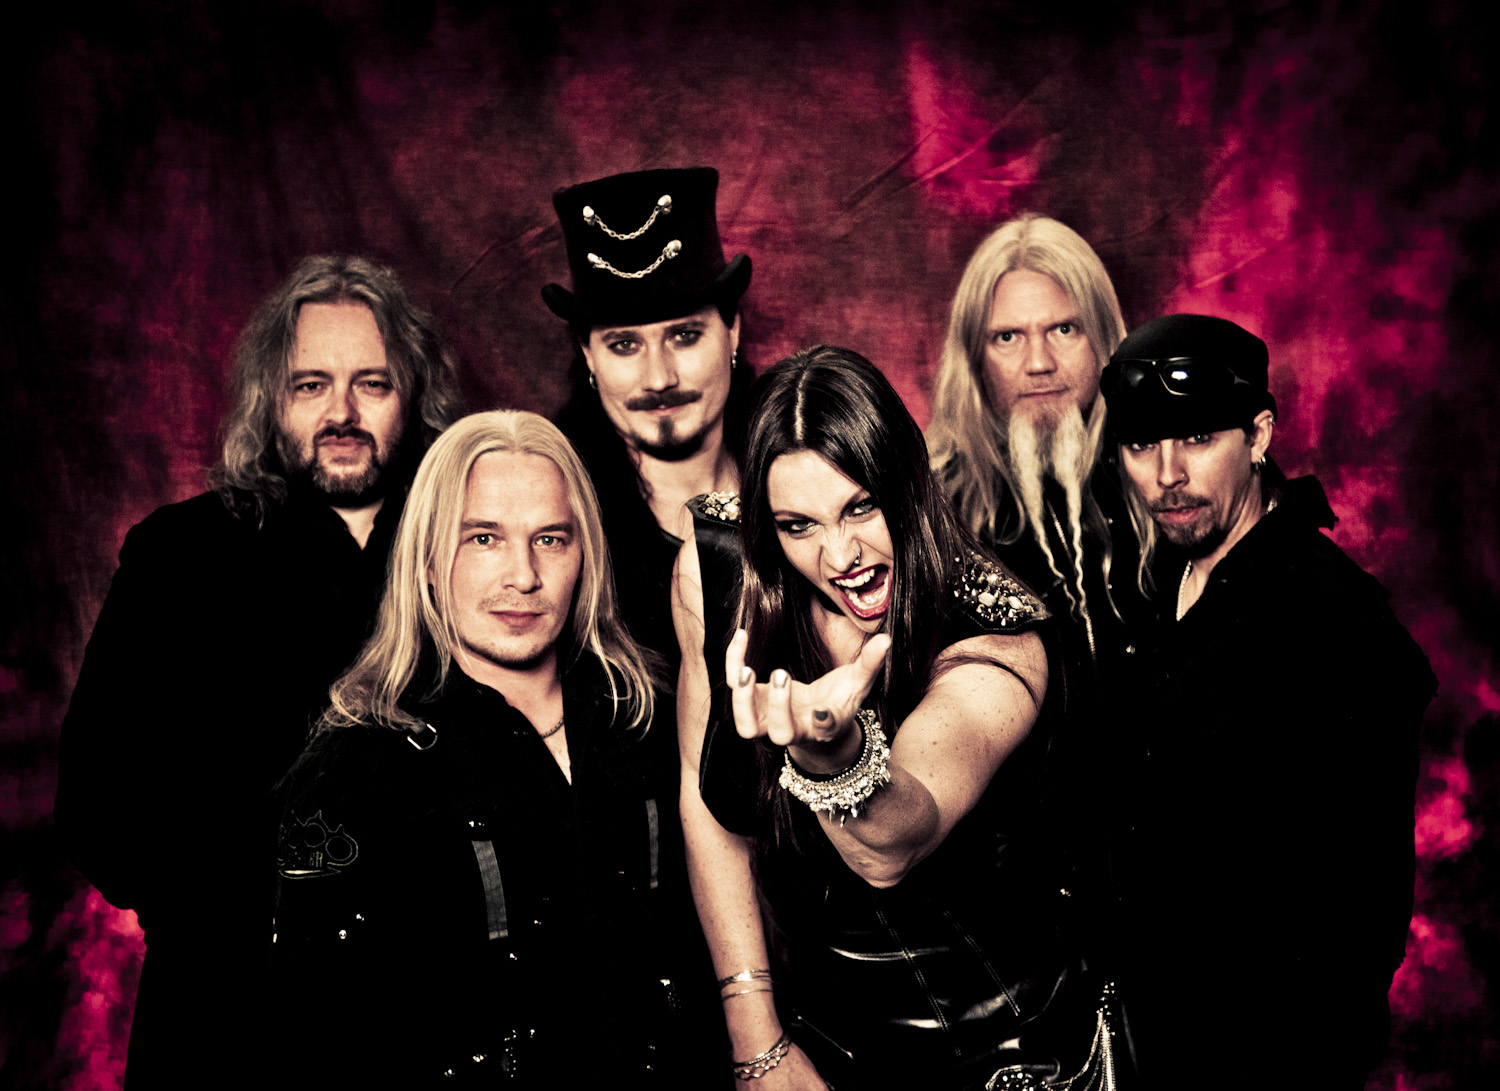 Nightwish, источник фото: nightwish-club.ru